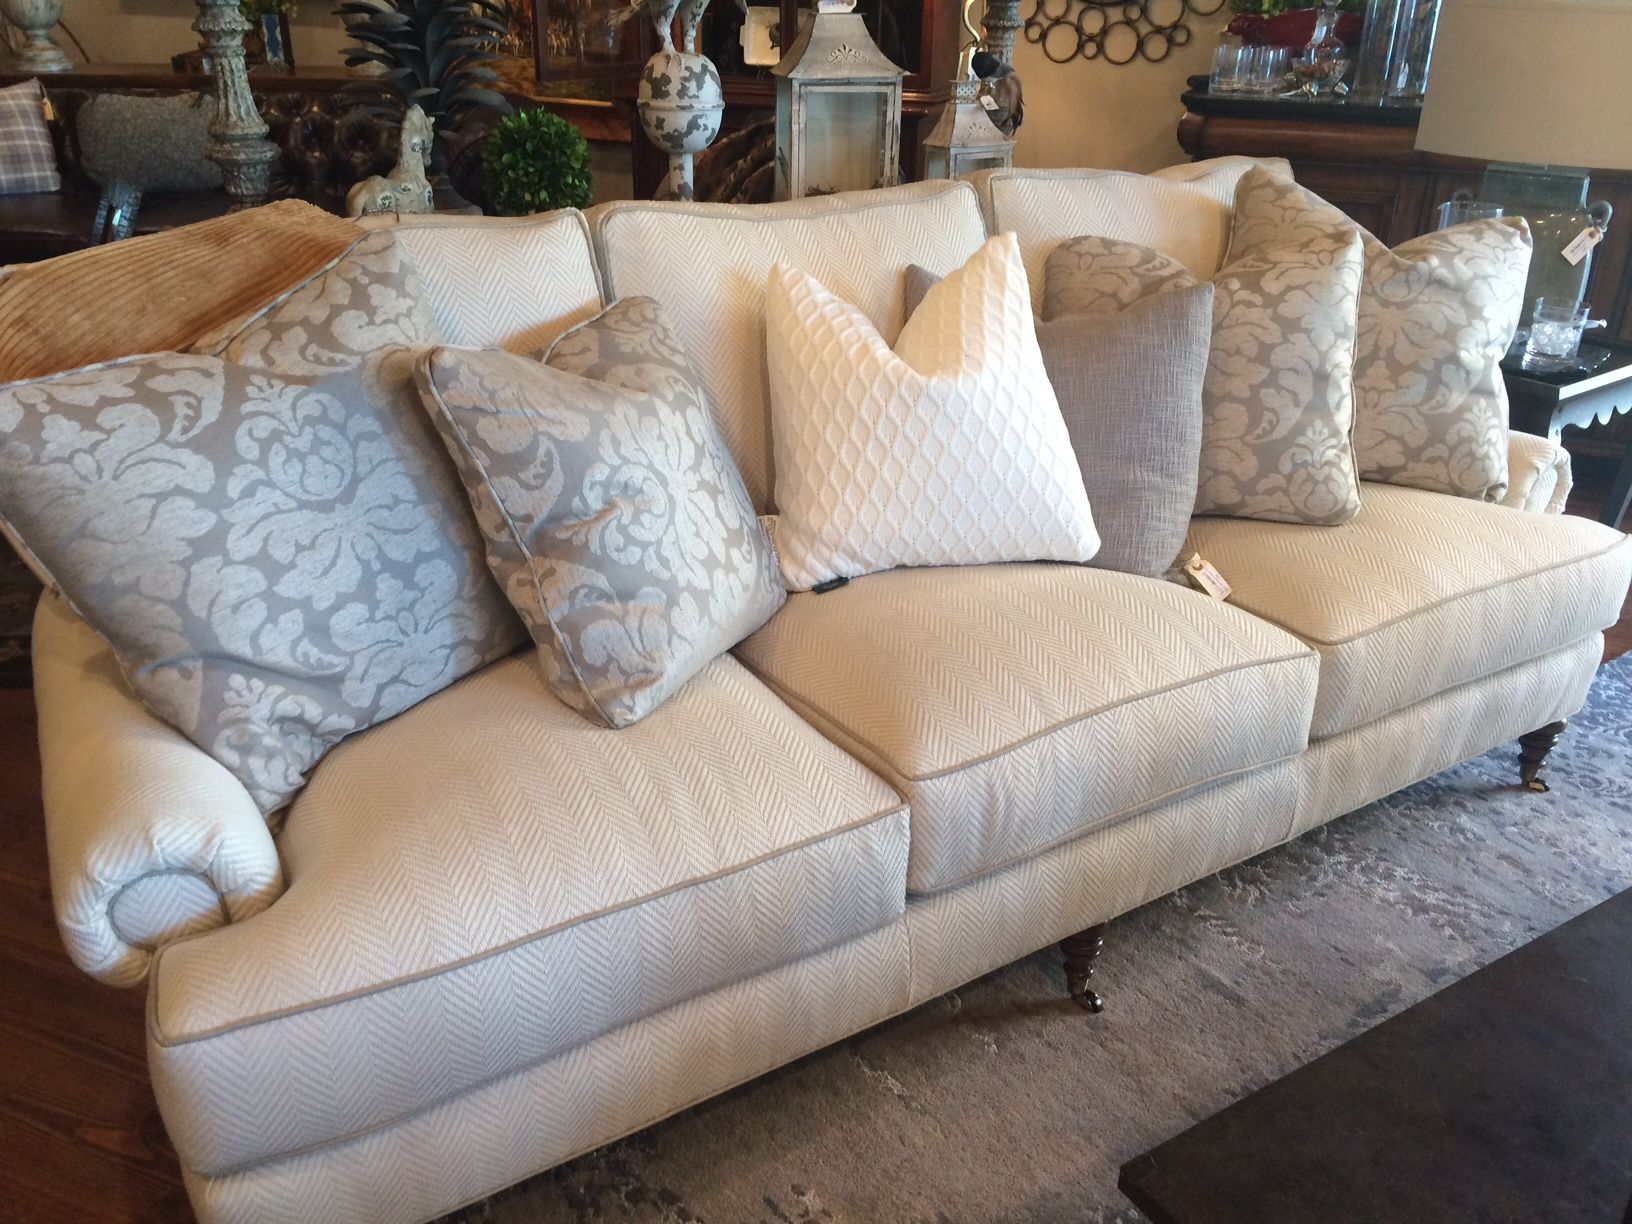 Camerich Sofa Review Sears Bed Chaise Herringbone Pattern Home Co